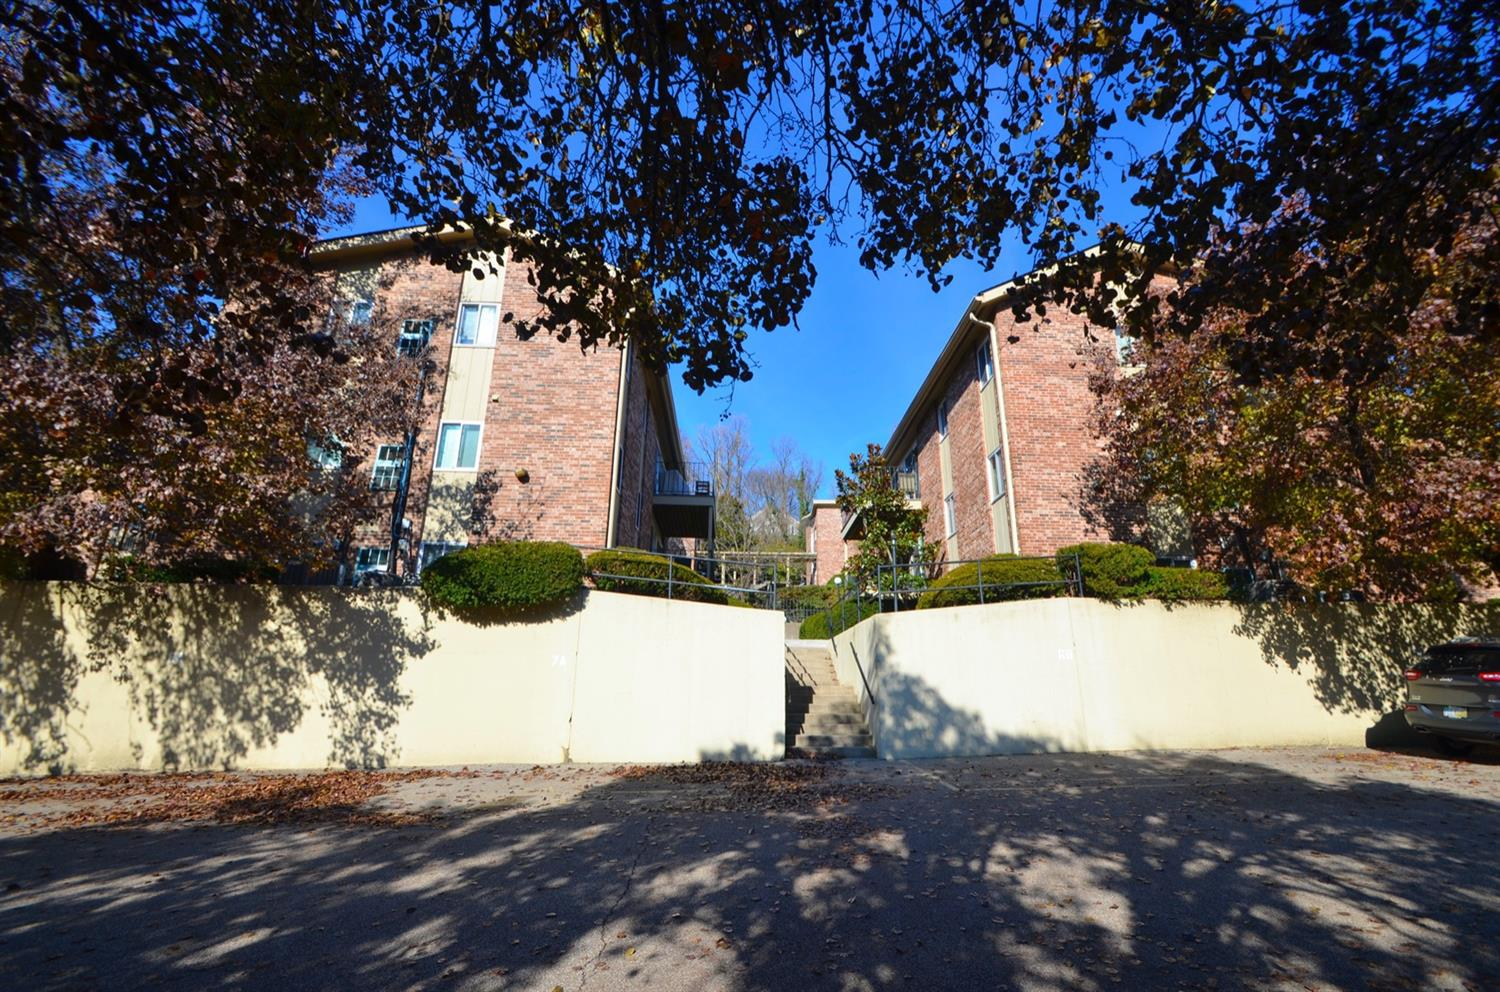 This unit comes with one parking space and it is located right in front of this wall to the left.  Space 8A.  Additional parking is on the street and is plentiful and free - no permit required.  There are also designated guest spots in the parking lot.